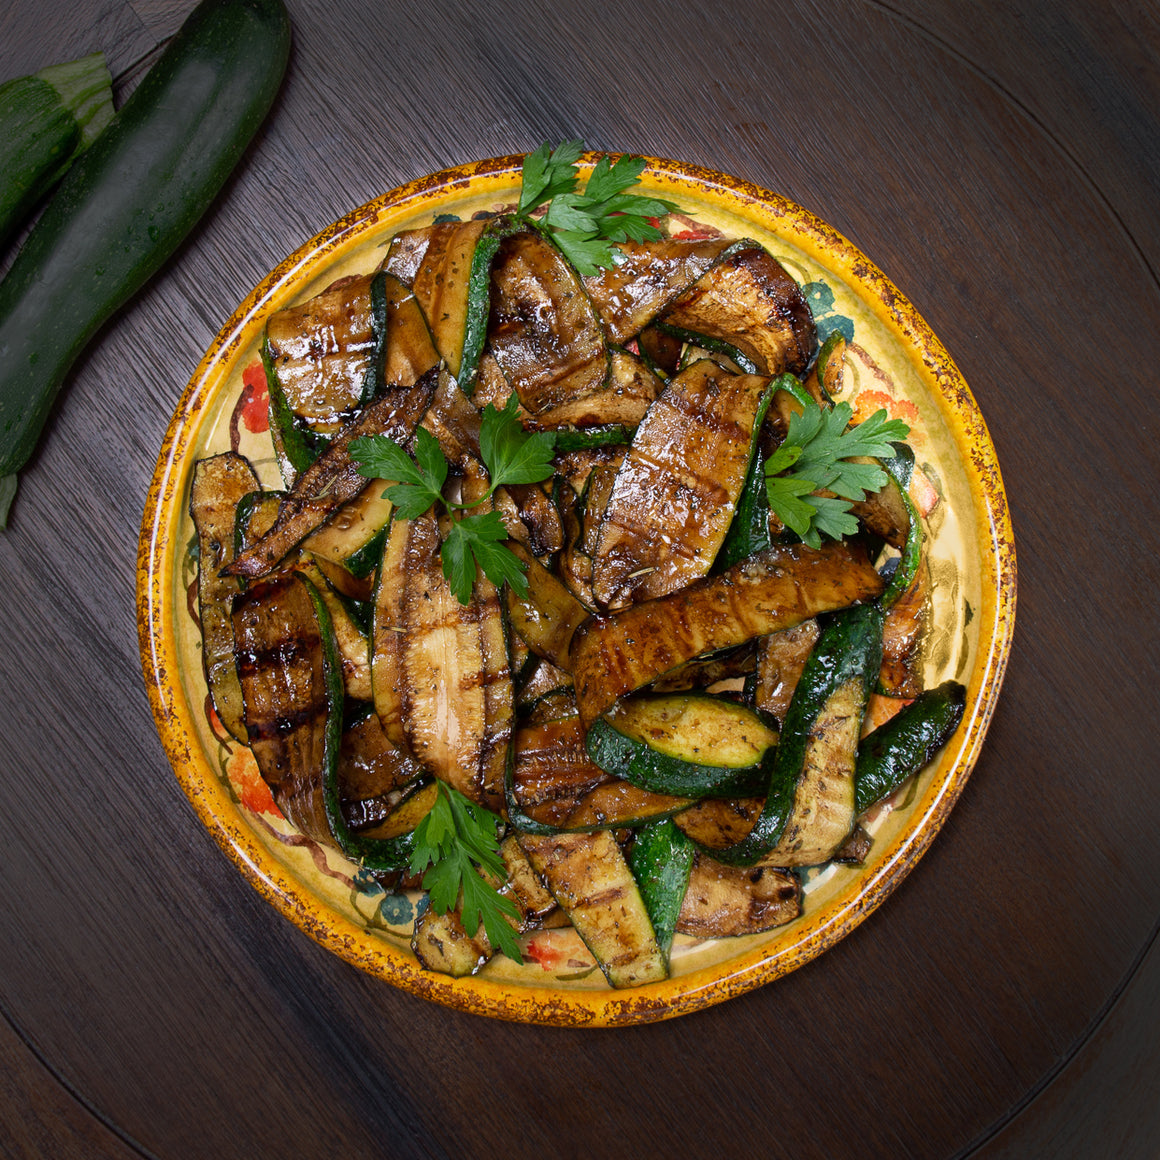 Balsamic Glazed Zucchini (4-6 servings)